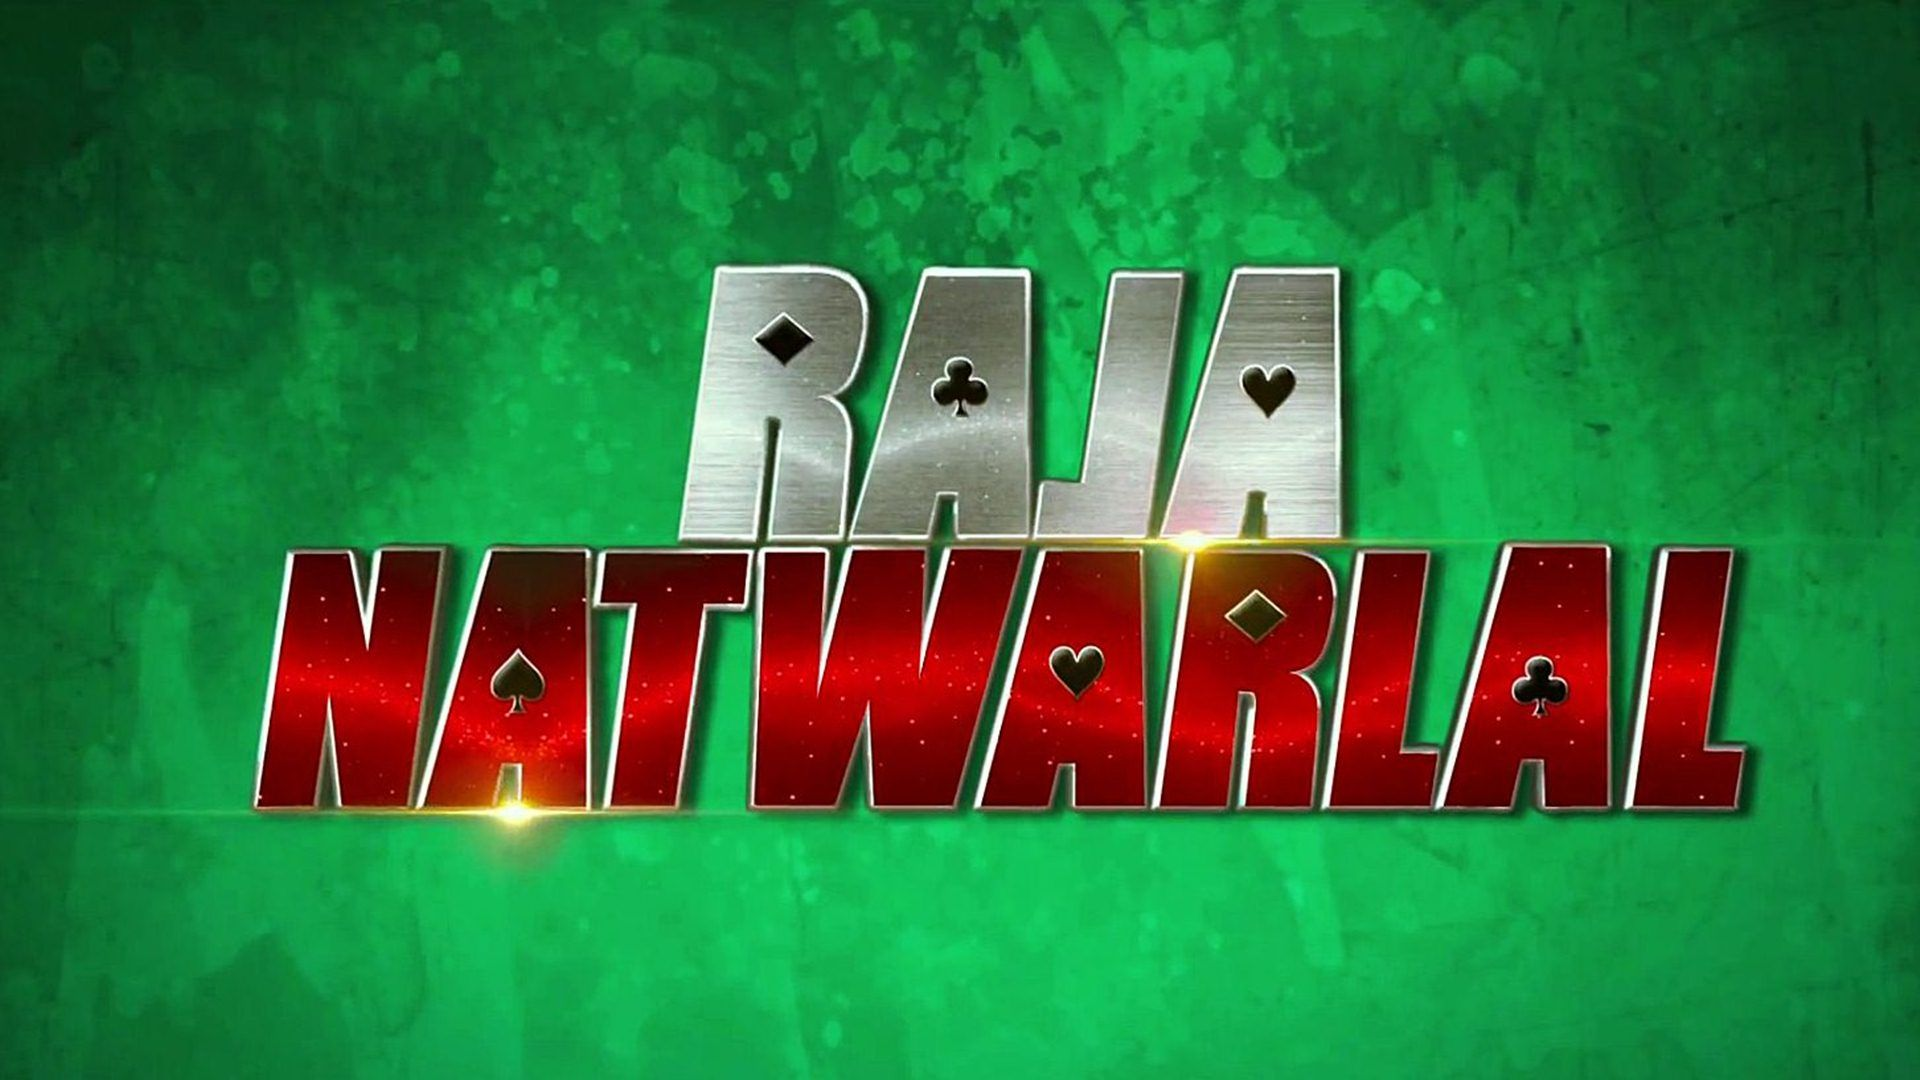 Download R Name wallpapers to your cell phone name new raja